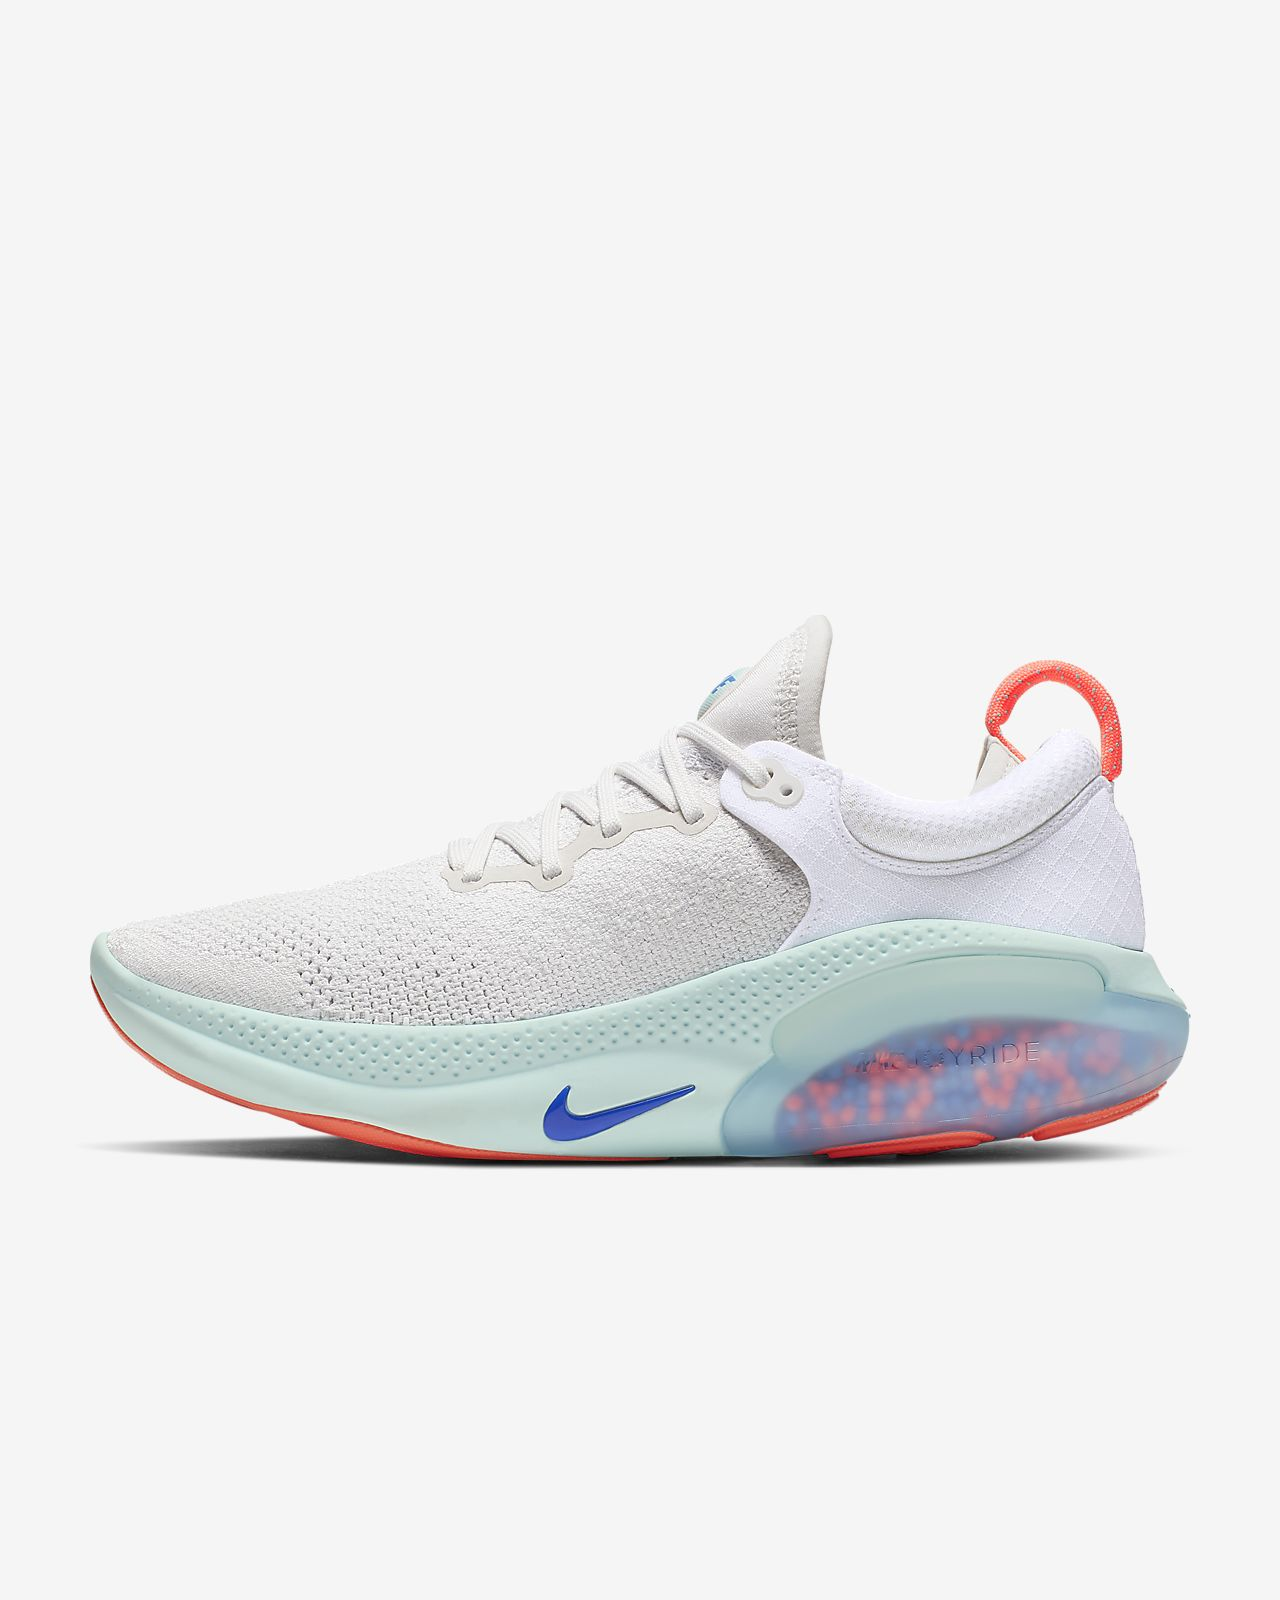 Nike Joyride Run Flyknit Women\u0027s Running Shoe